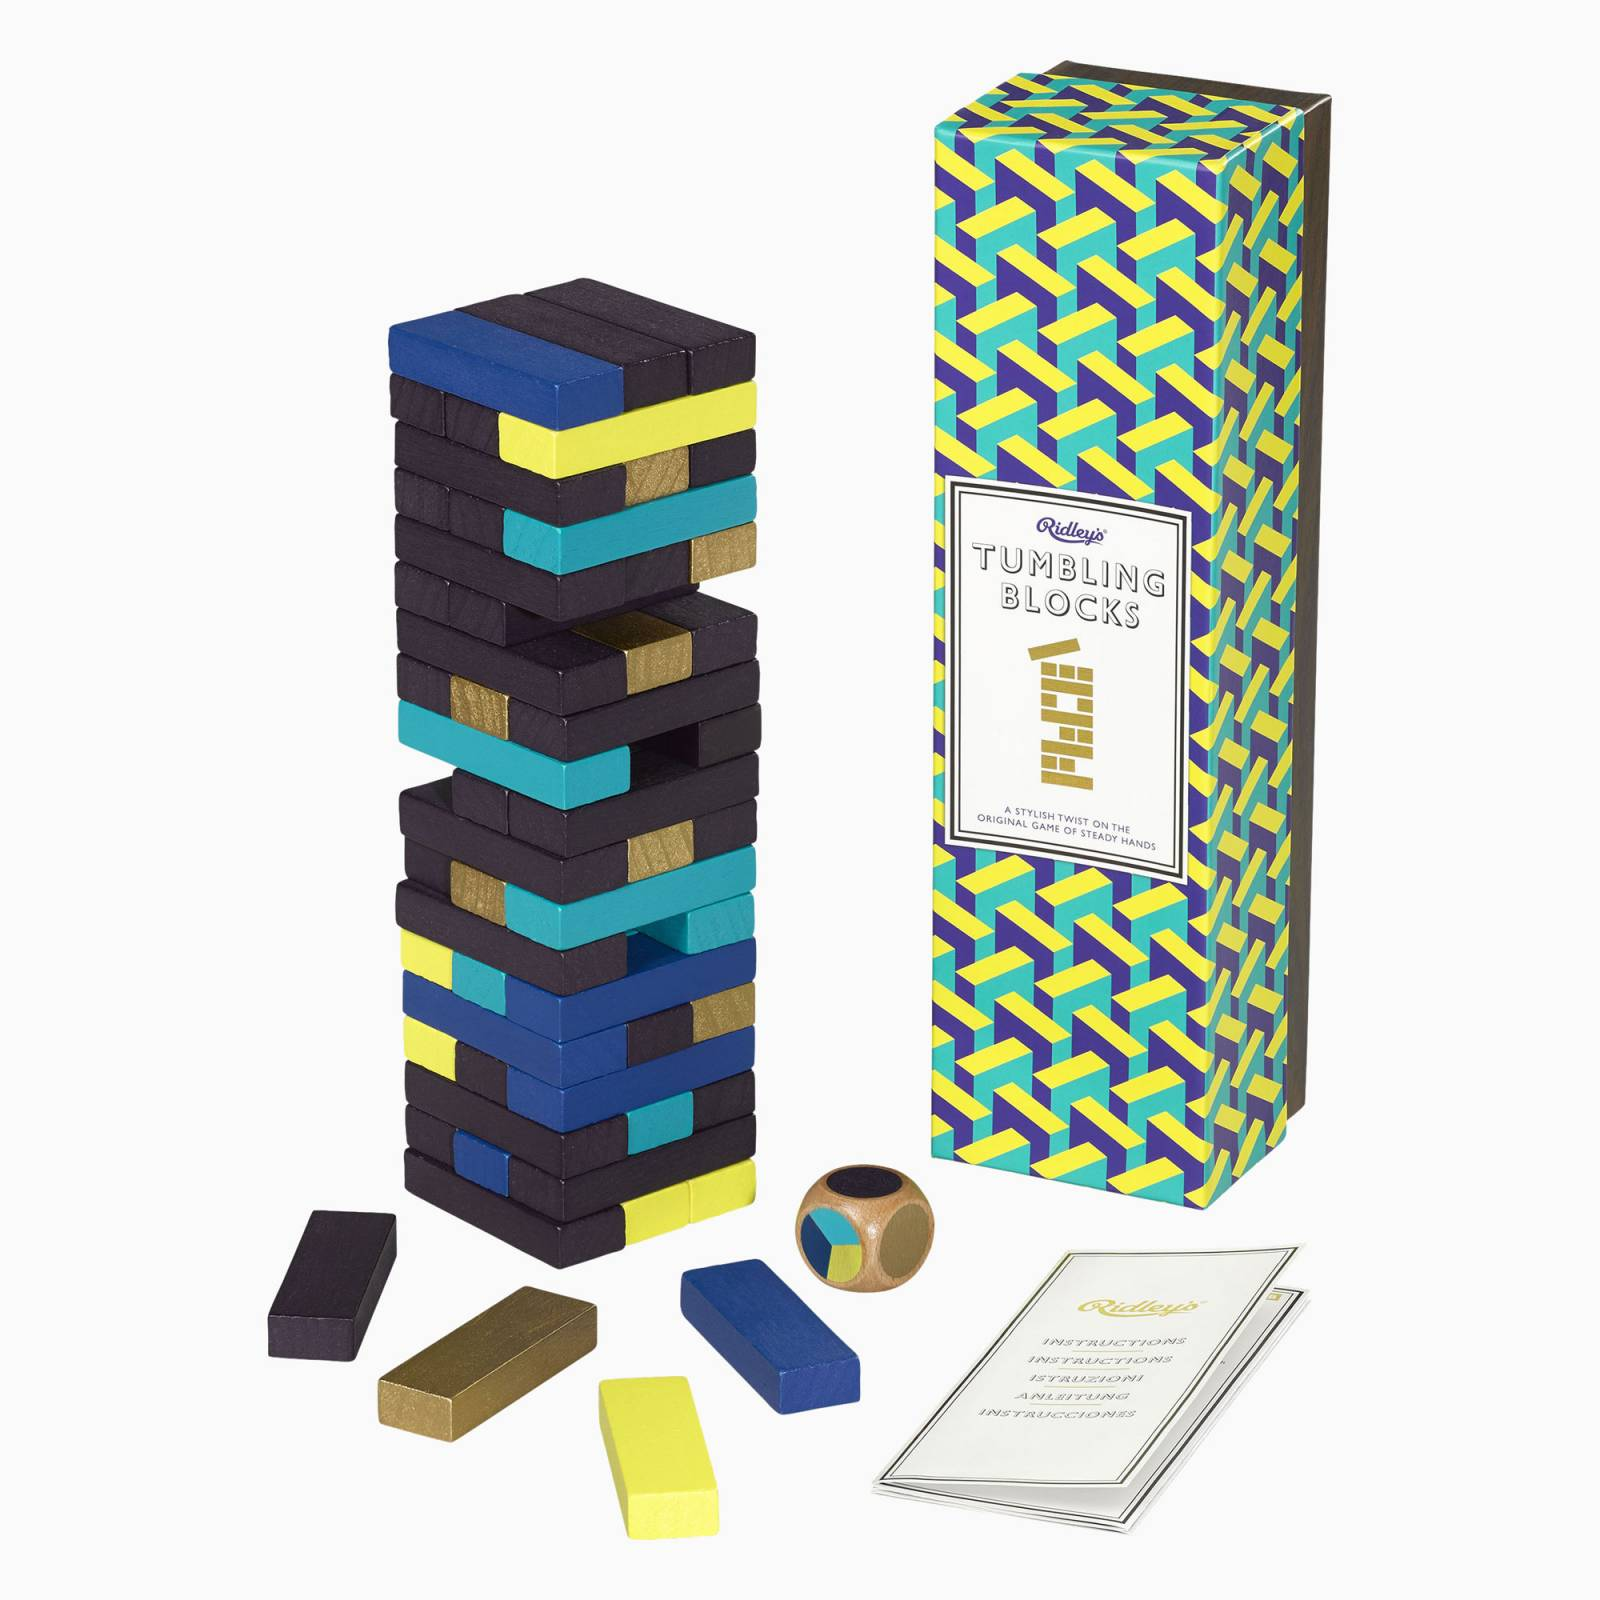 Tumbling Blocks With Dice In Retro Packaging